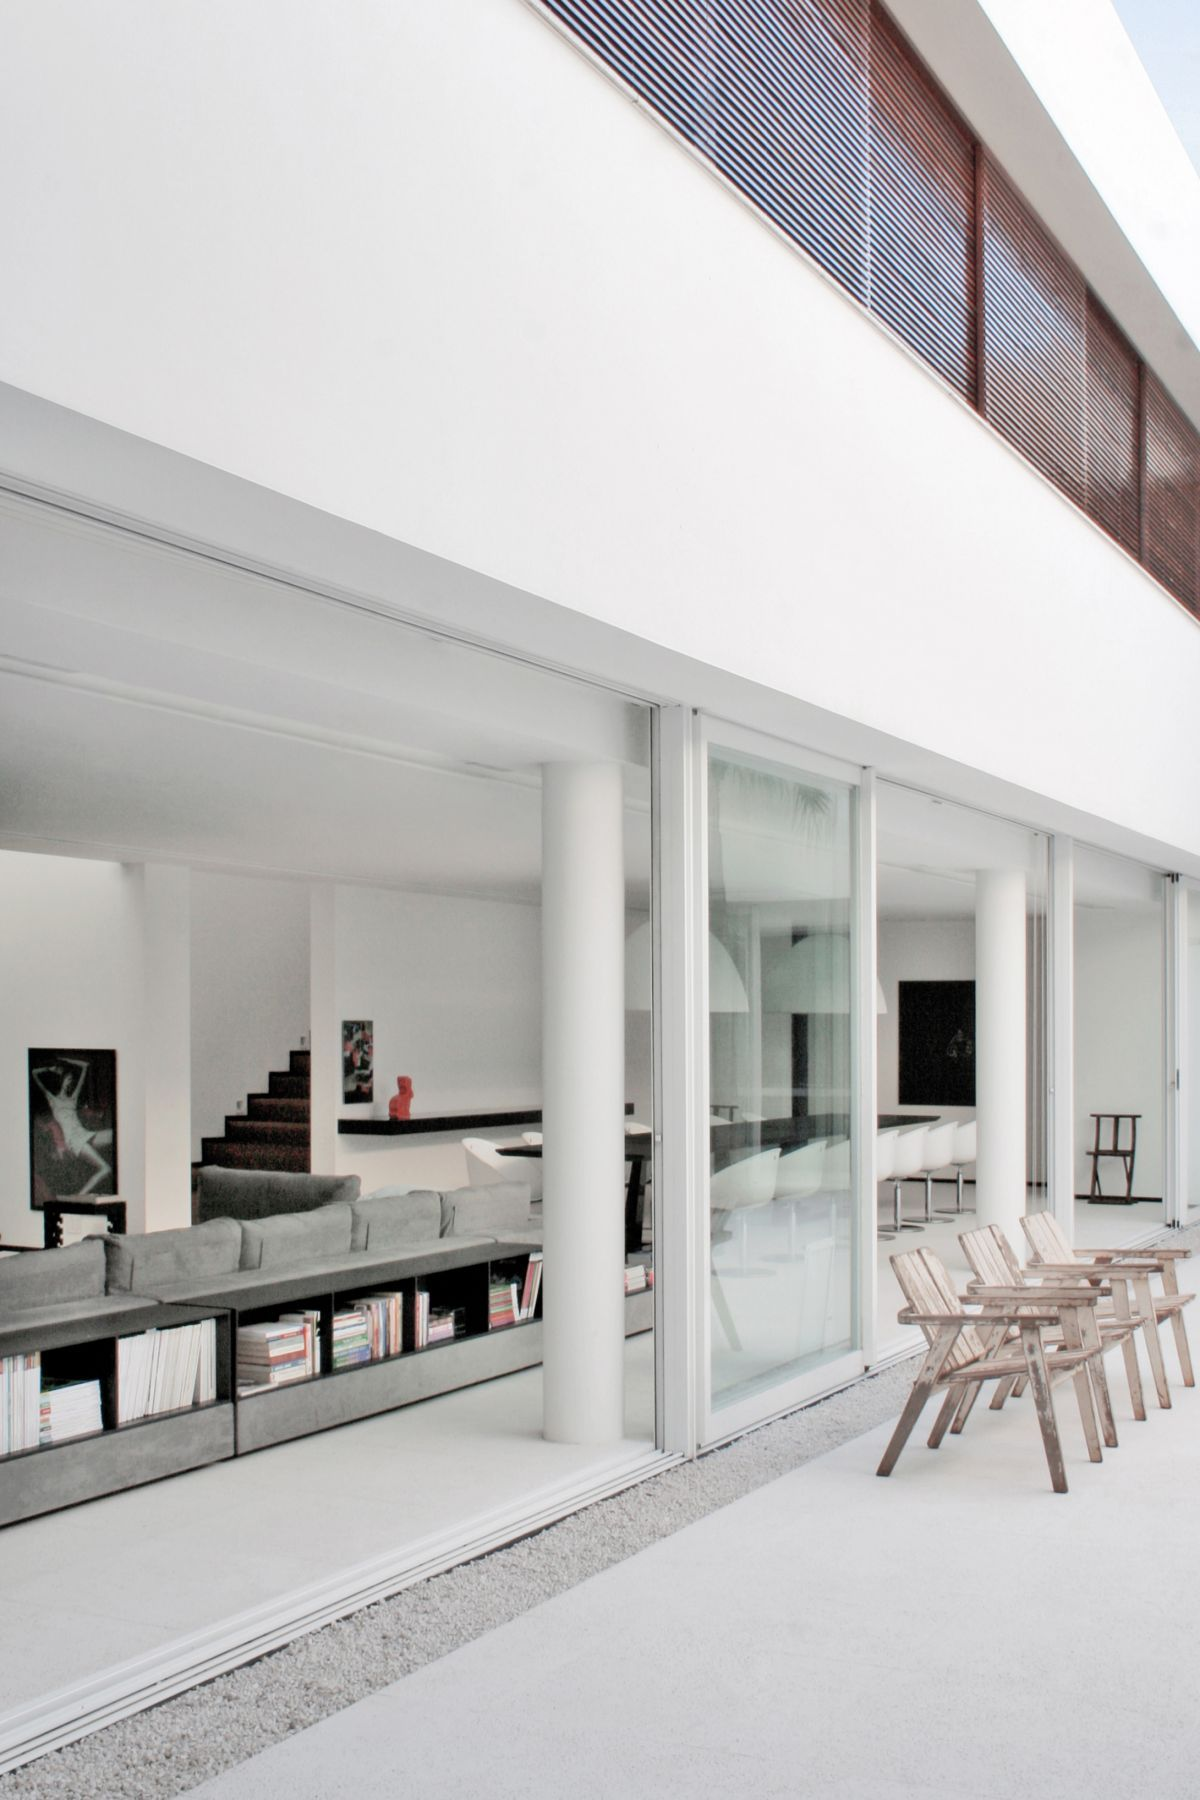 As 261010 06 With Images Minimalist House Design Interior